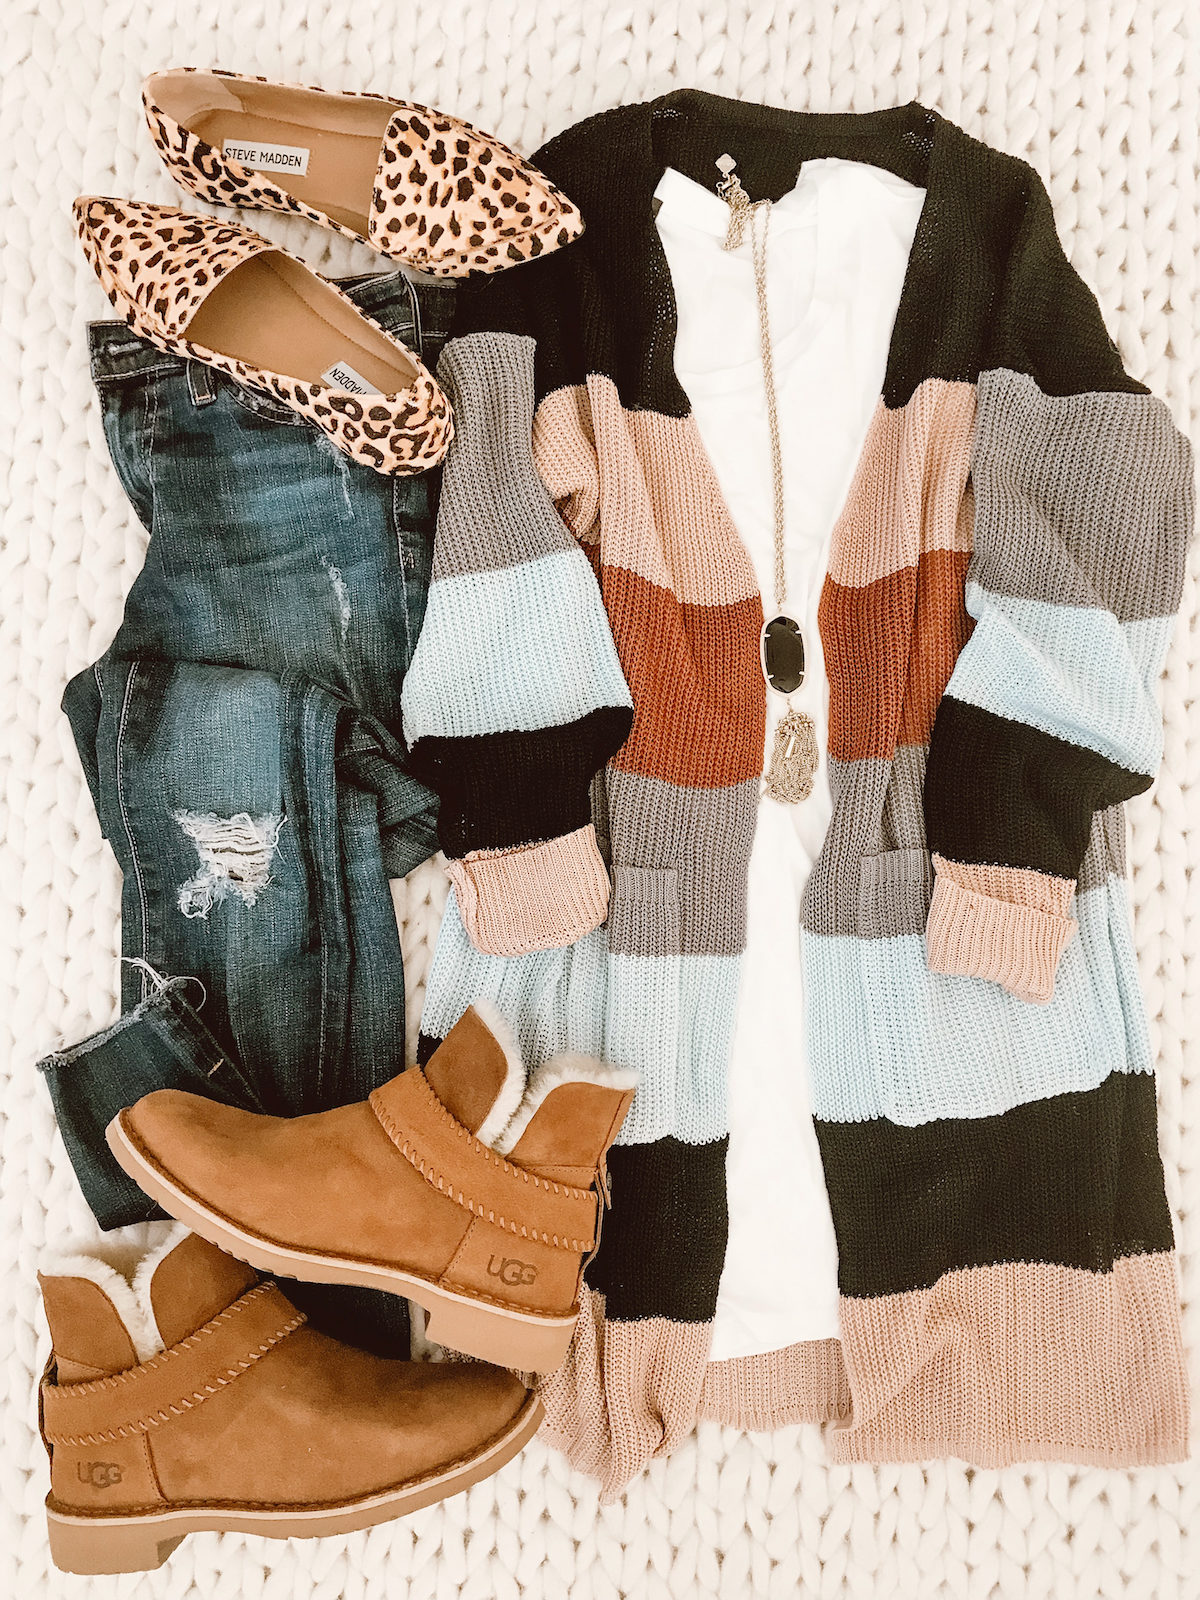 Striped cardigan with jeans and Ugg booties (2)